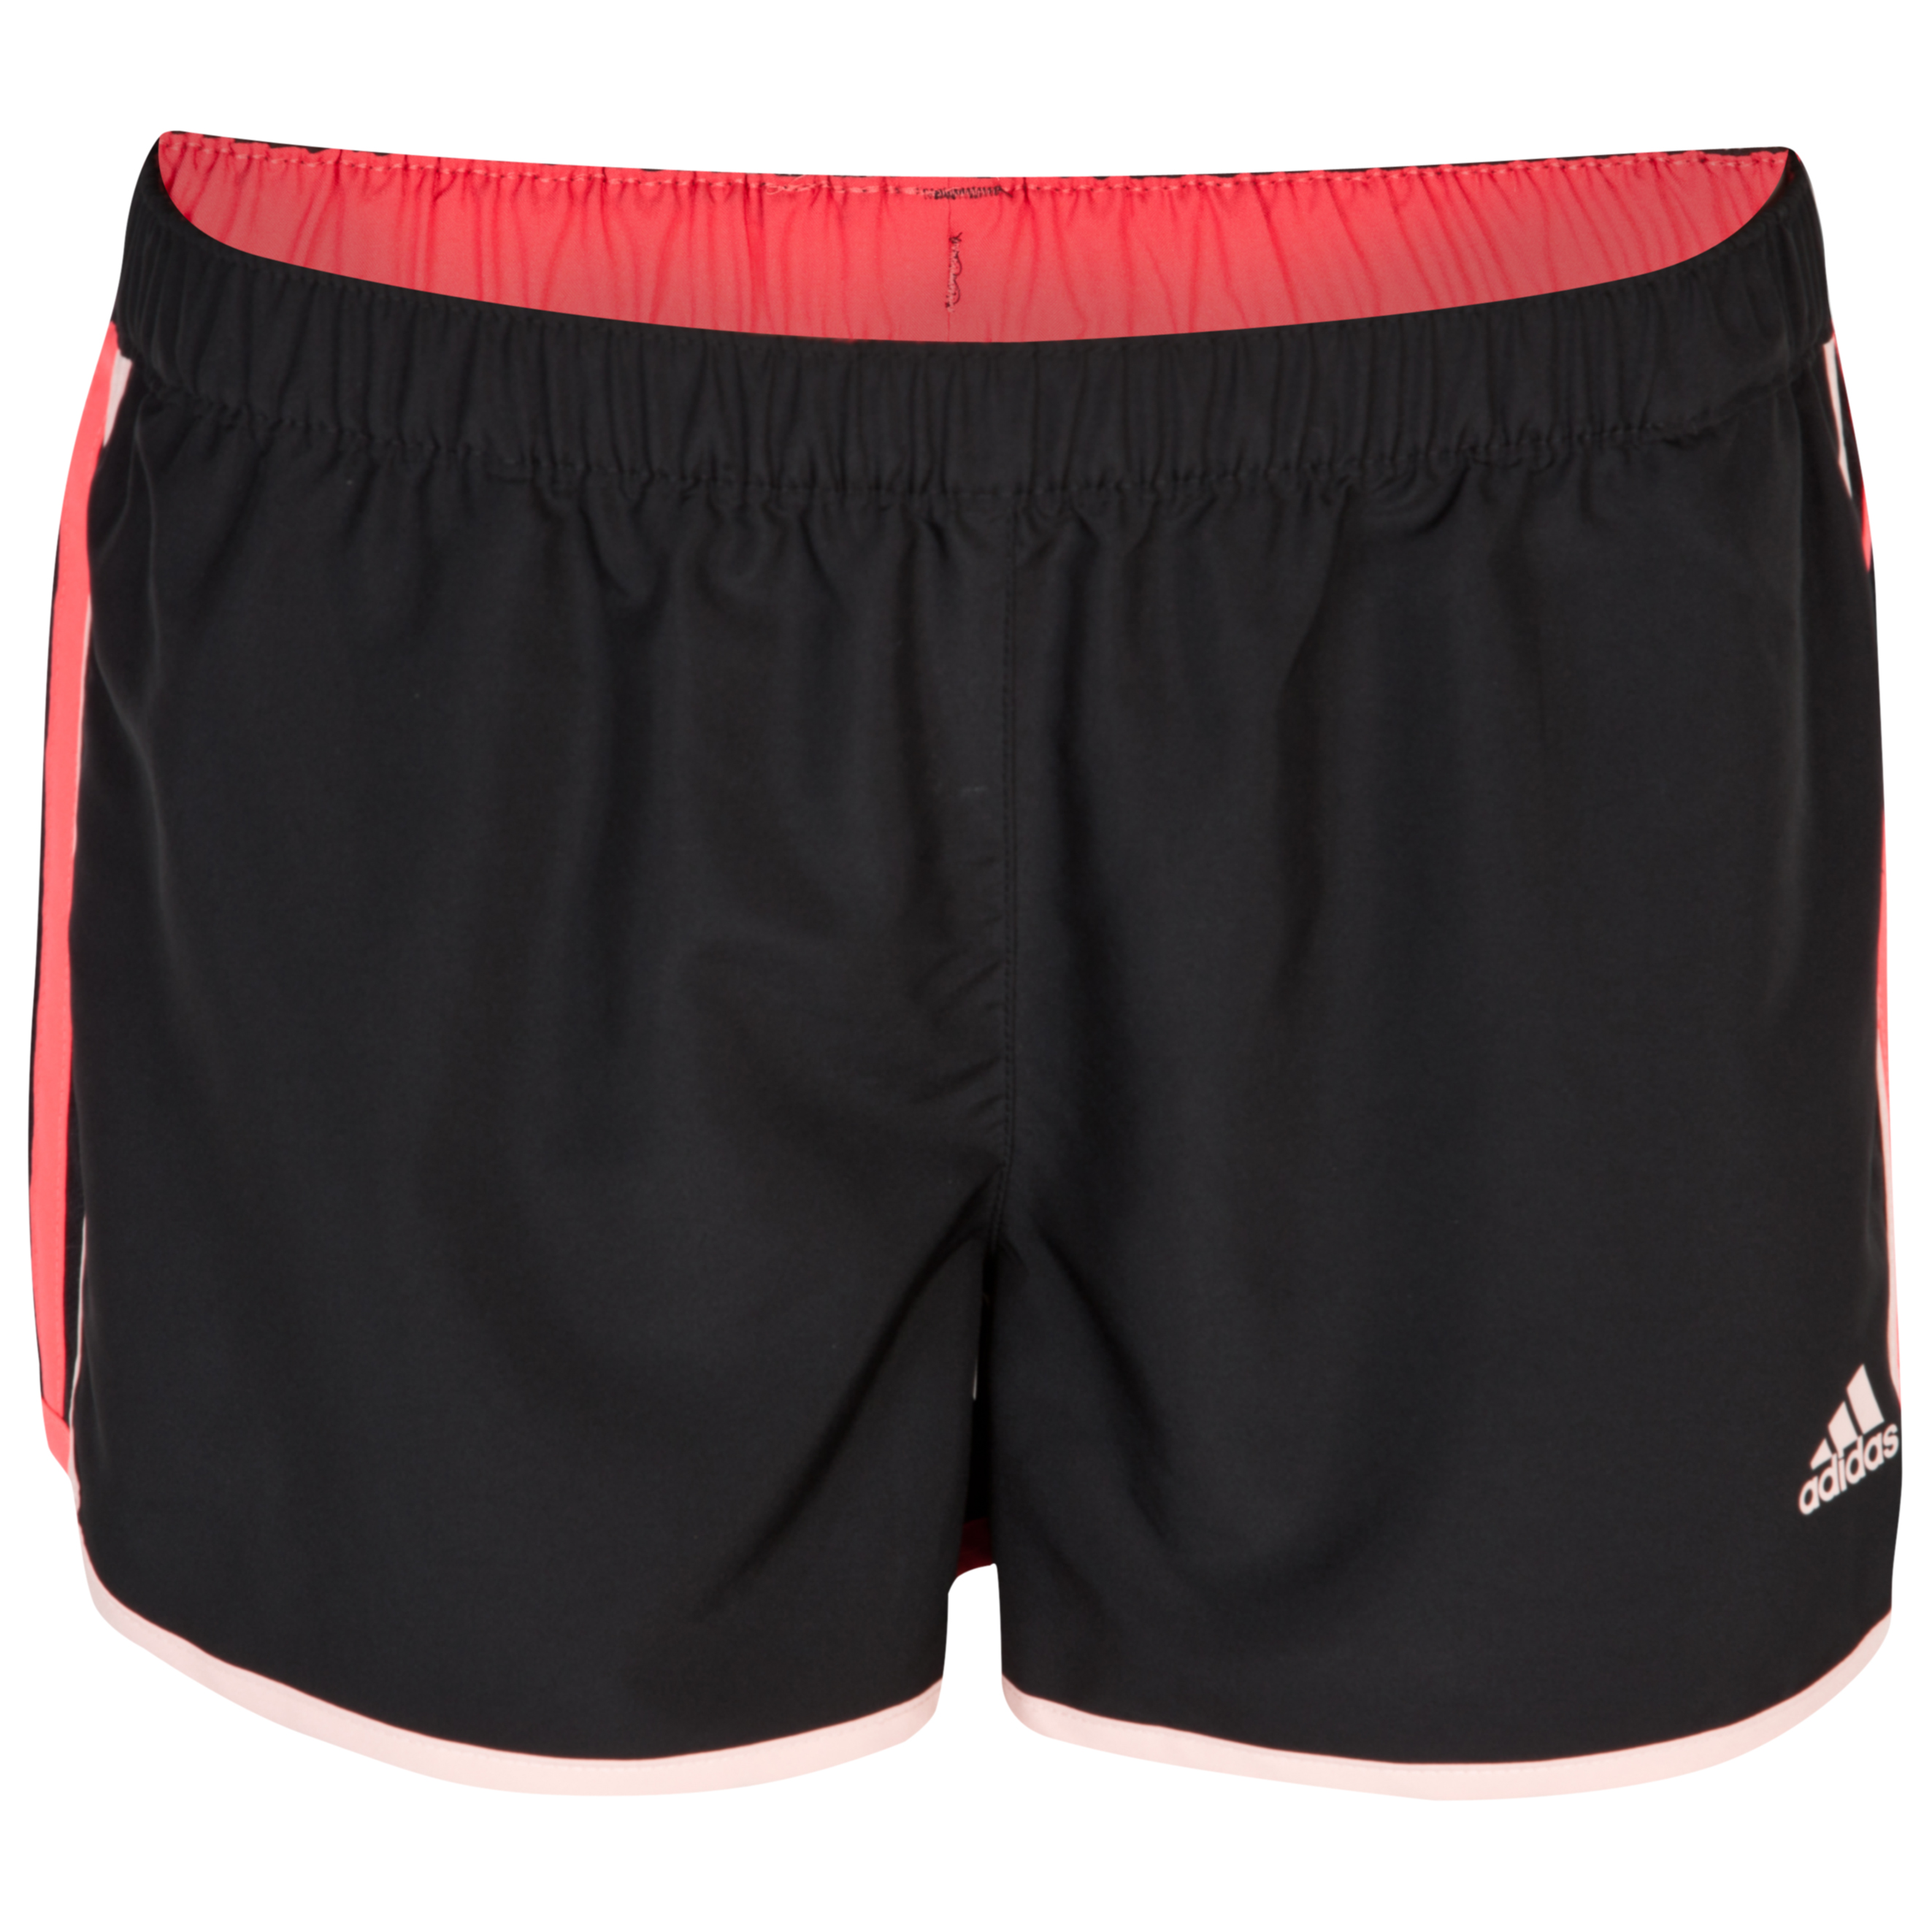 Adidas M10 Short - Black/Haze Coral S13 - Womens